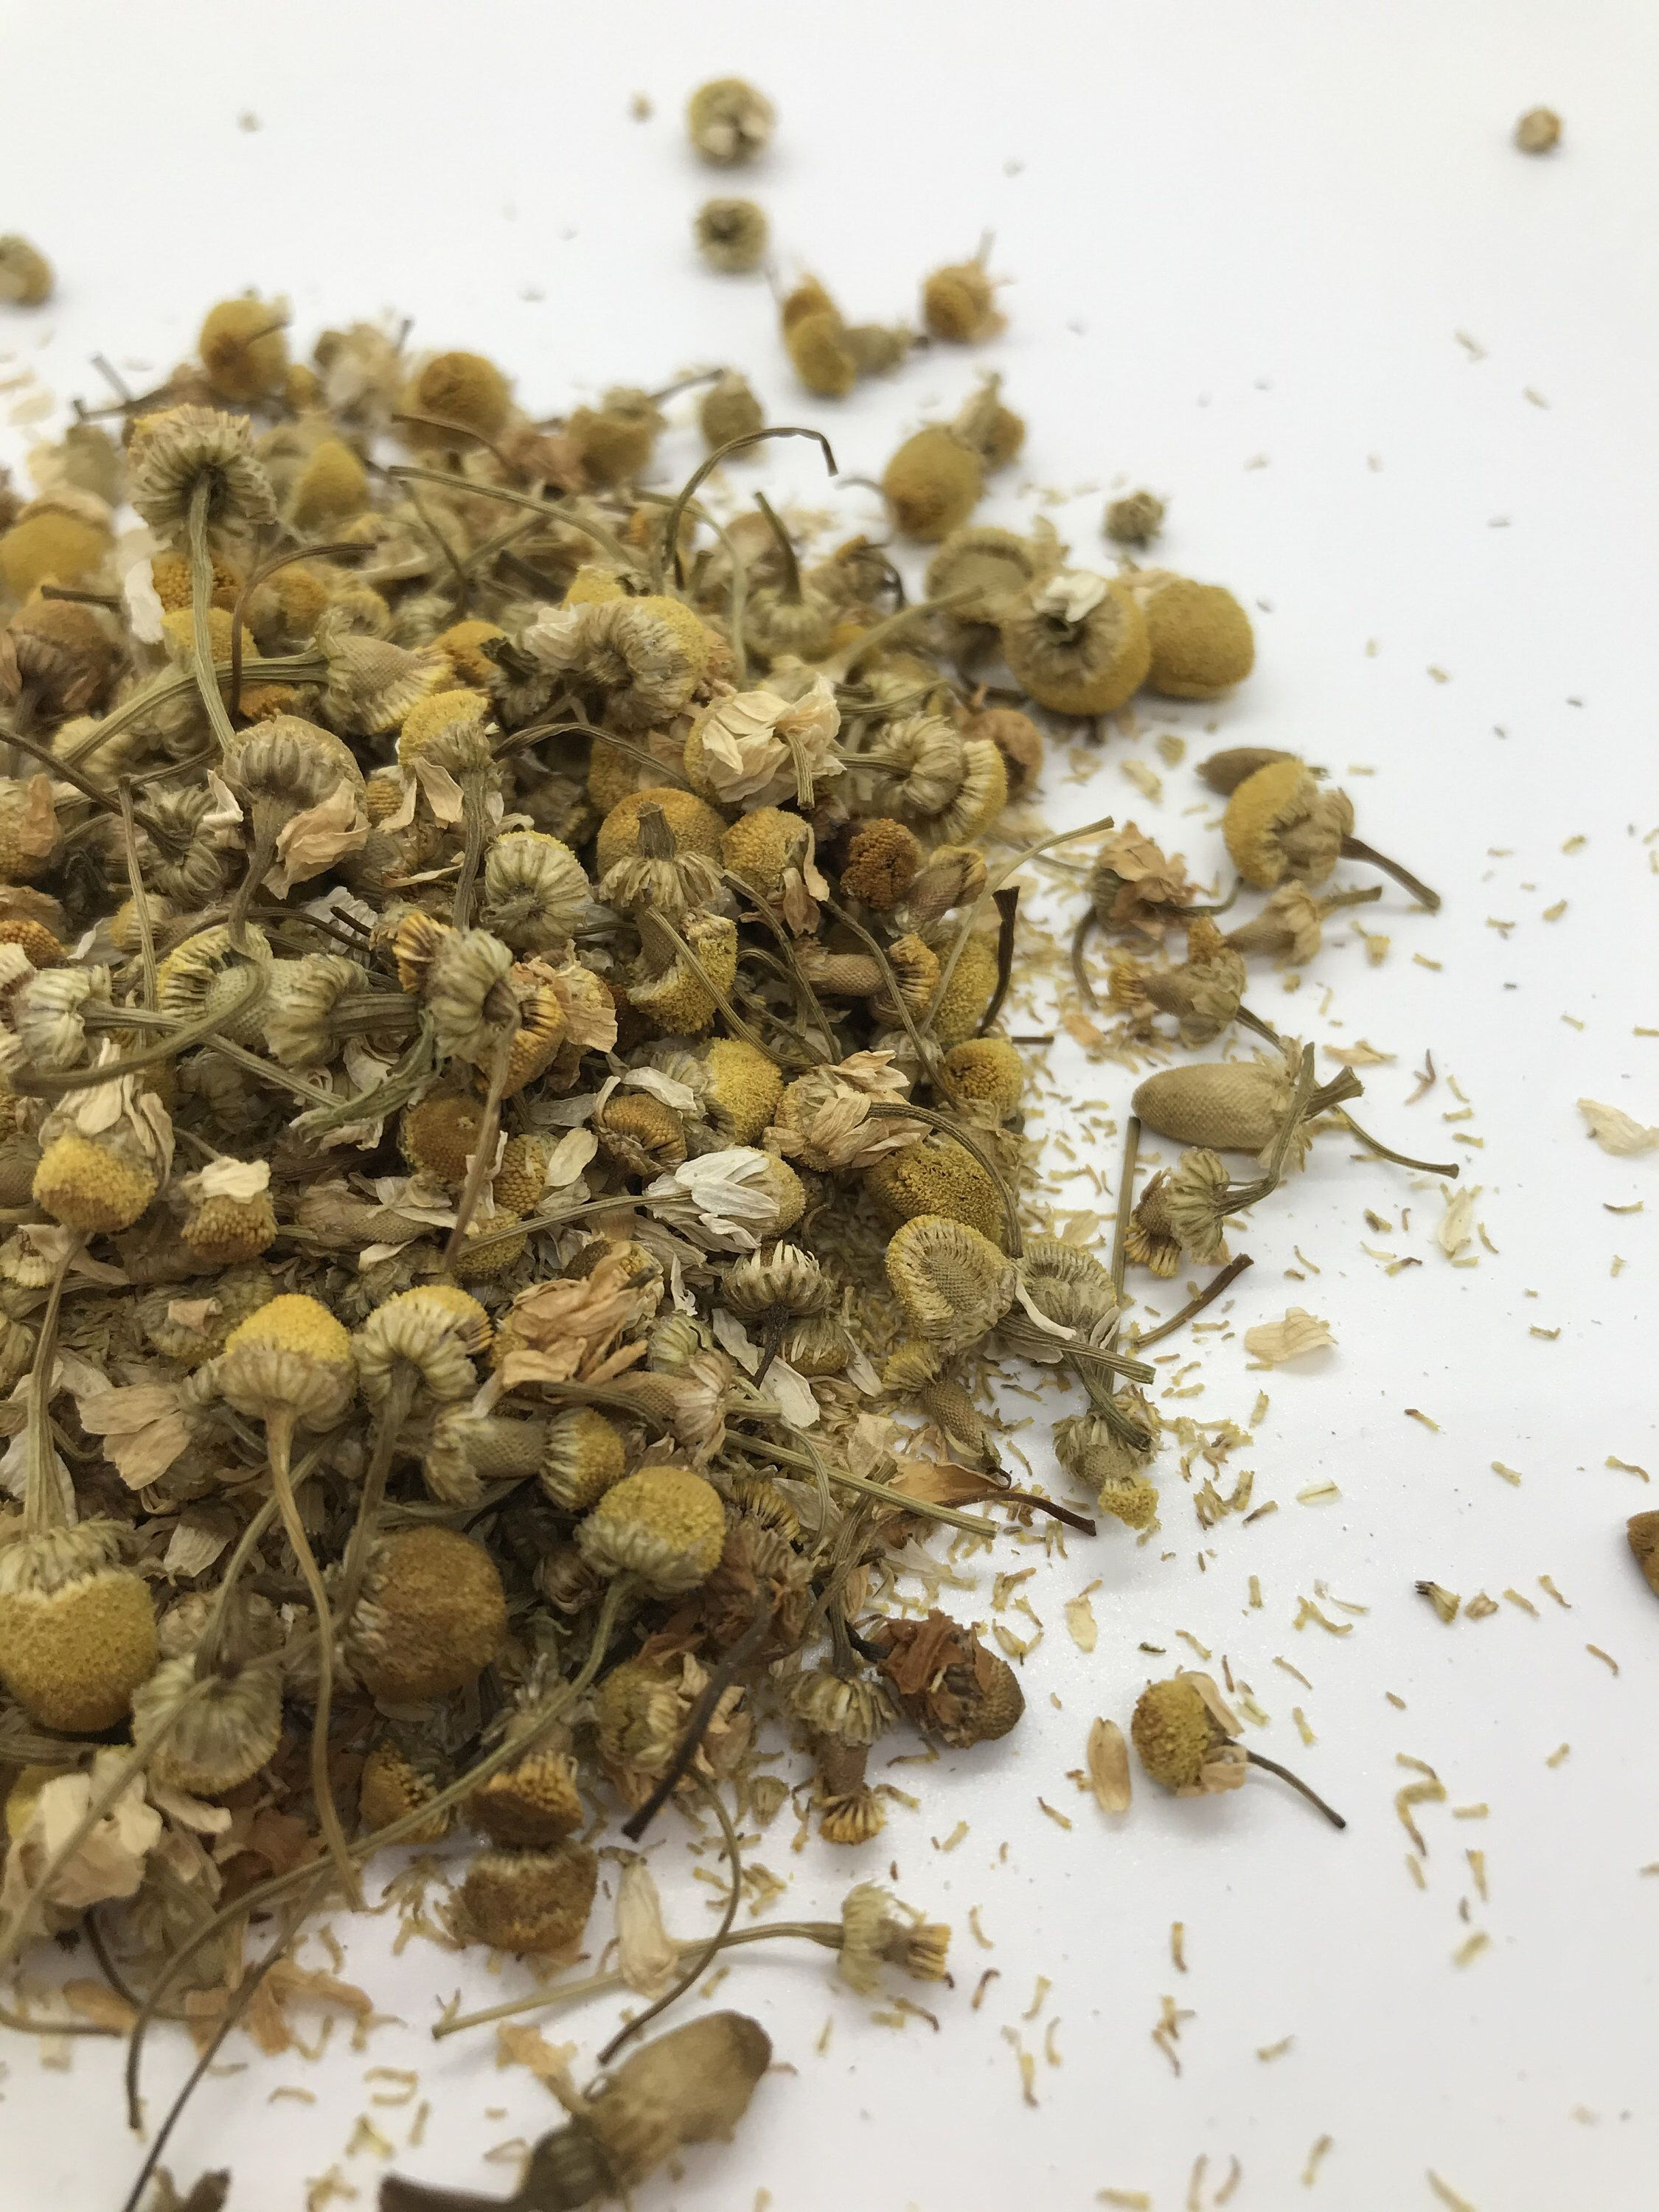 Excited to share this item from my shop Loose tea Egyptian chamomile herbal tea An awesome personalized gift